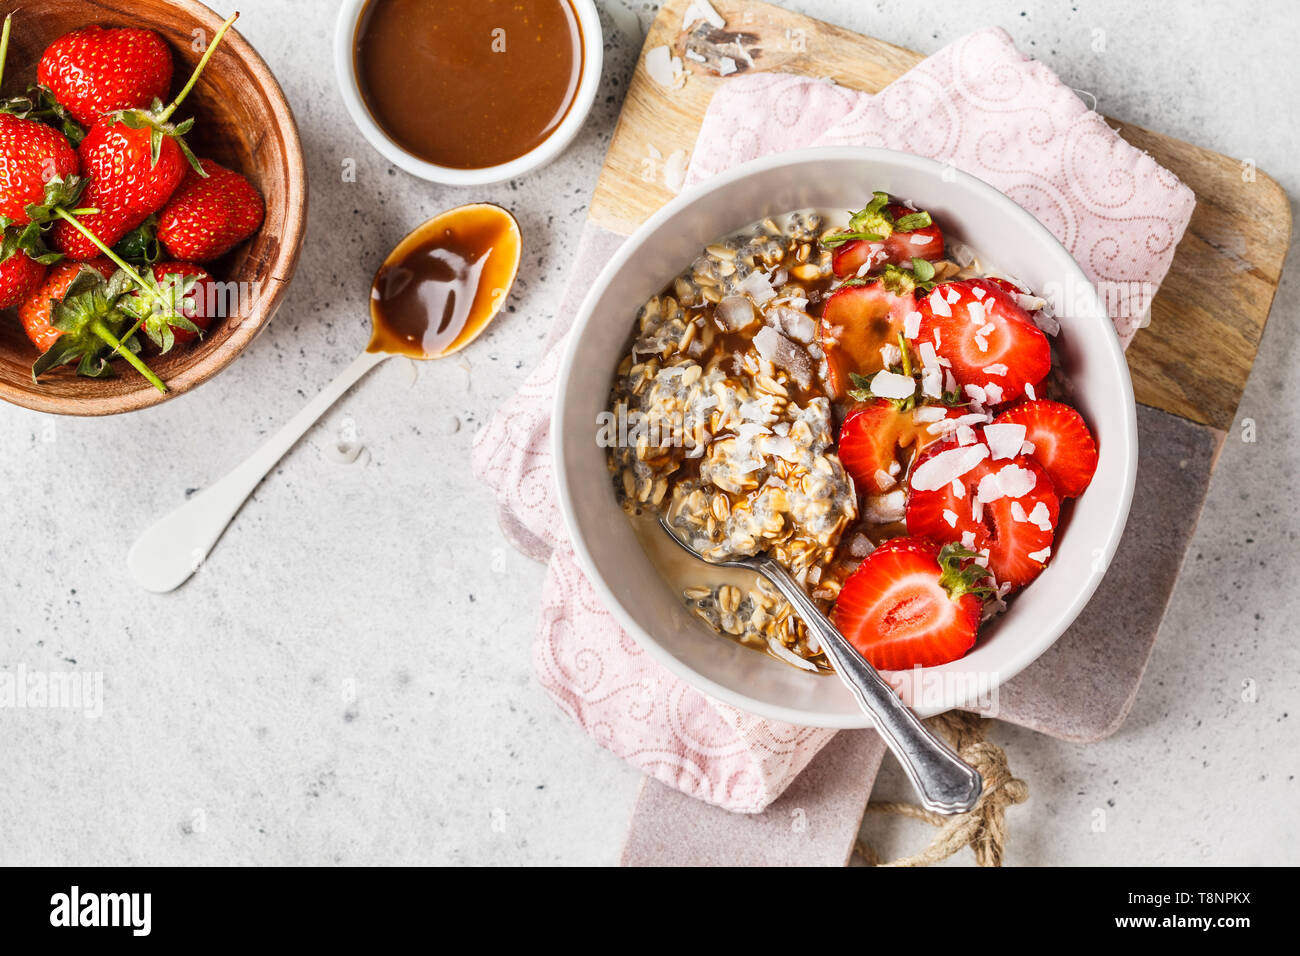 Vegan breakfast. Oatmeal with chia seeds, berries, seeds and caramel in a white bowl. Stock Photo